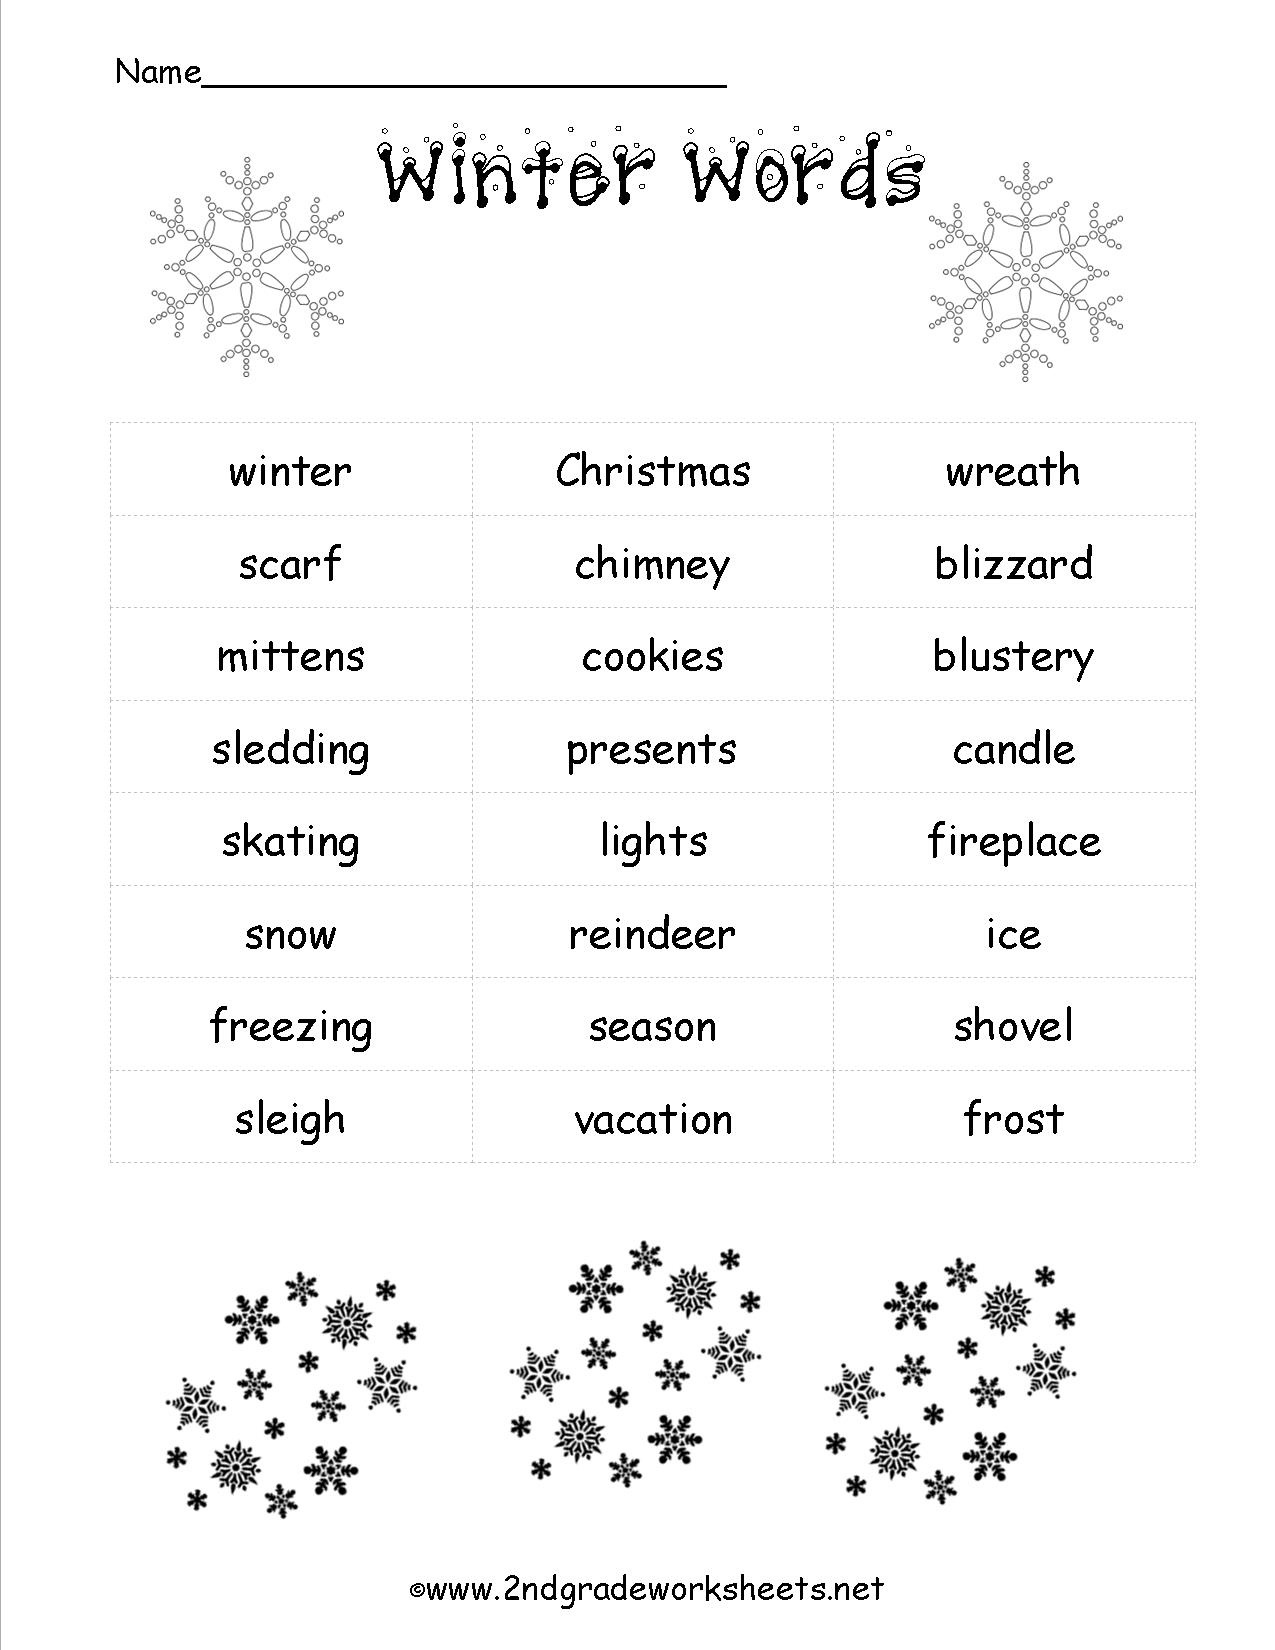 Christmas Worksheets And Printouts - Free Printable Christmas Activities